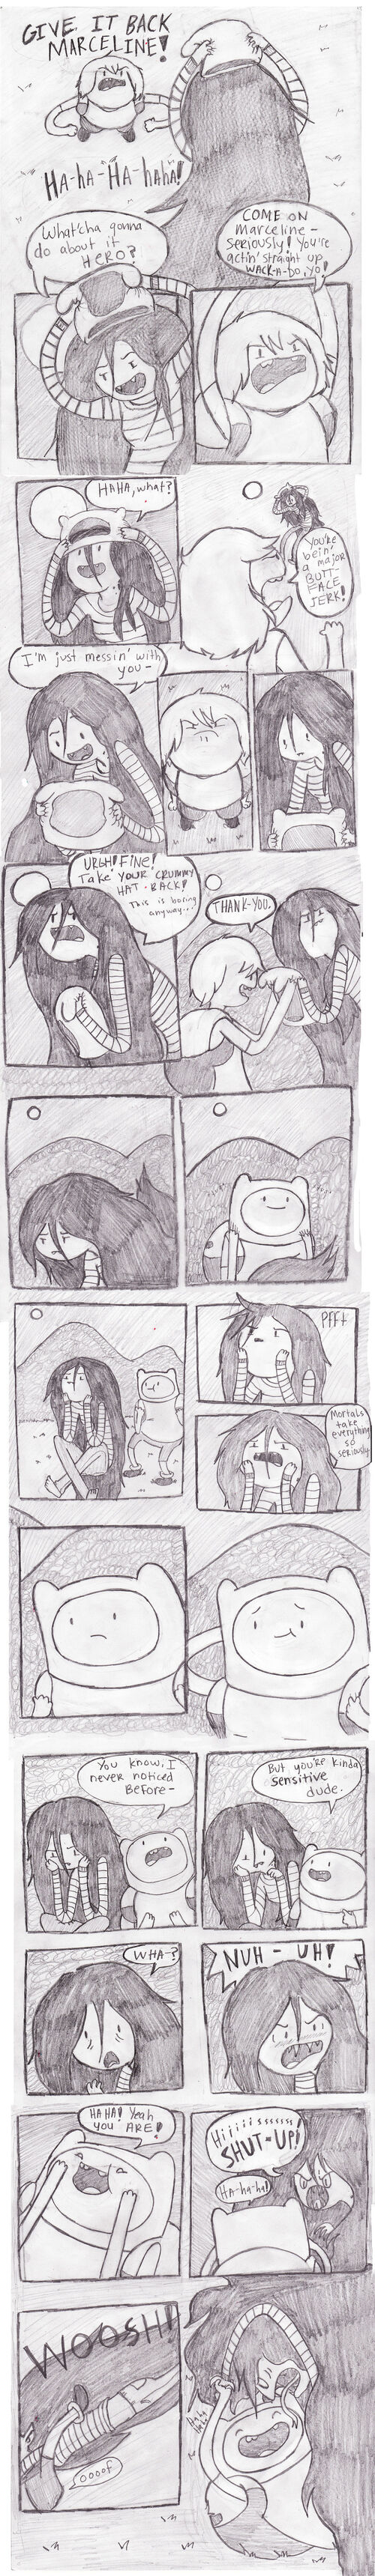 Marceline the jerk by thestinkyfoot-d4gm4j2